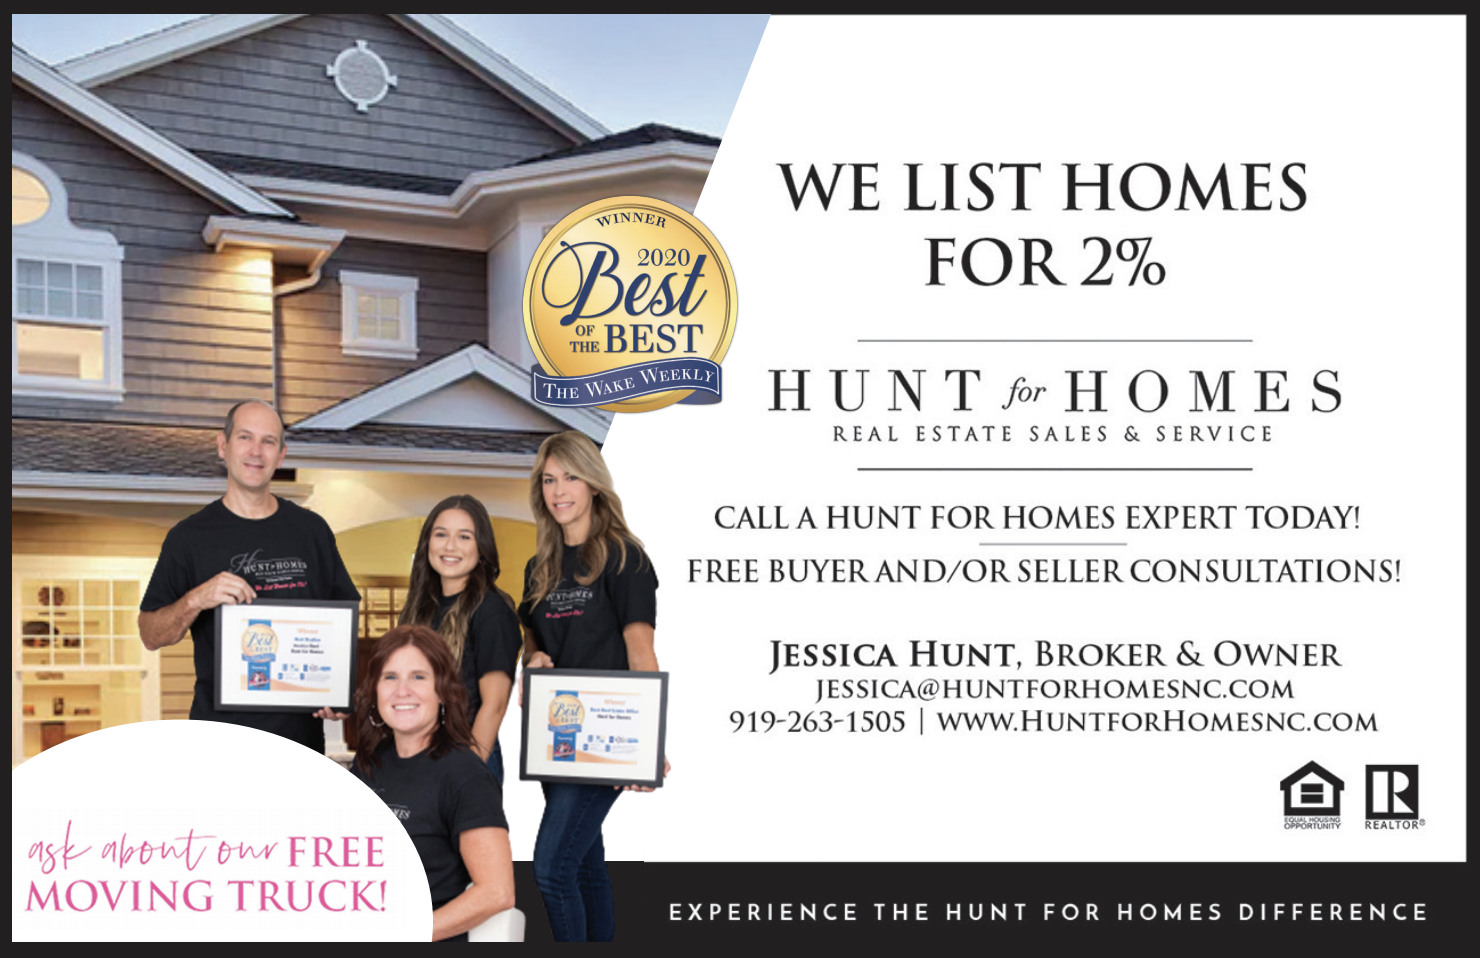 We list homes for 2%. Call a Hunt for Homes Expert today at 919-263-1505